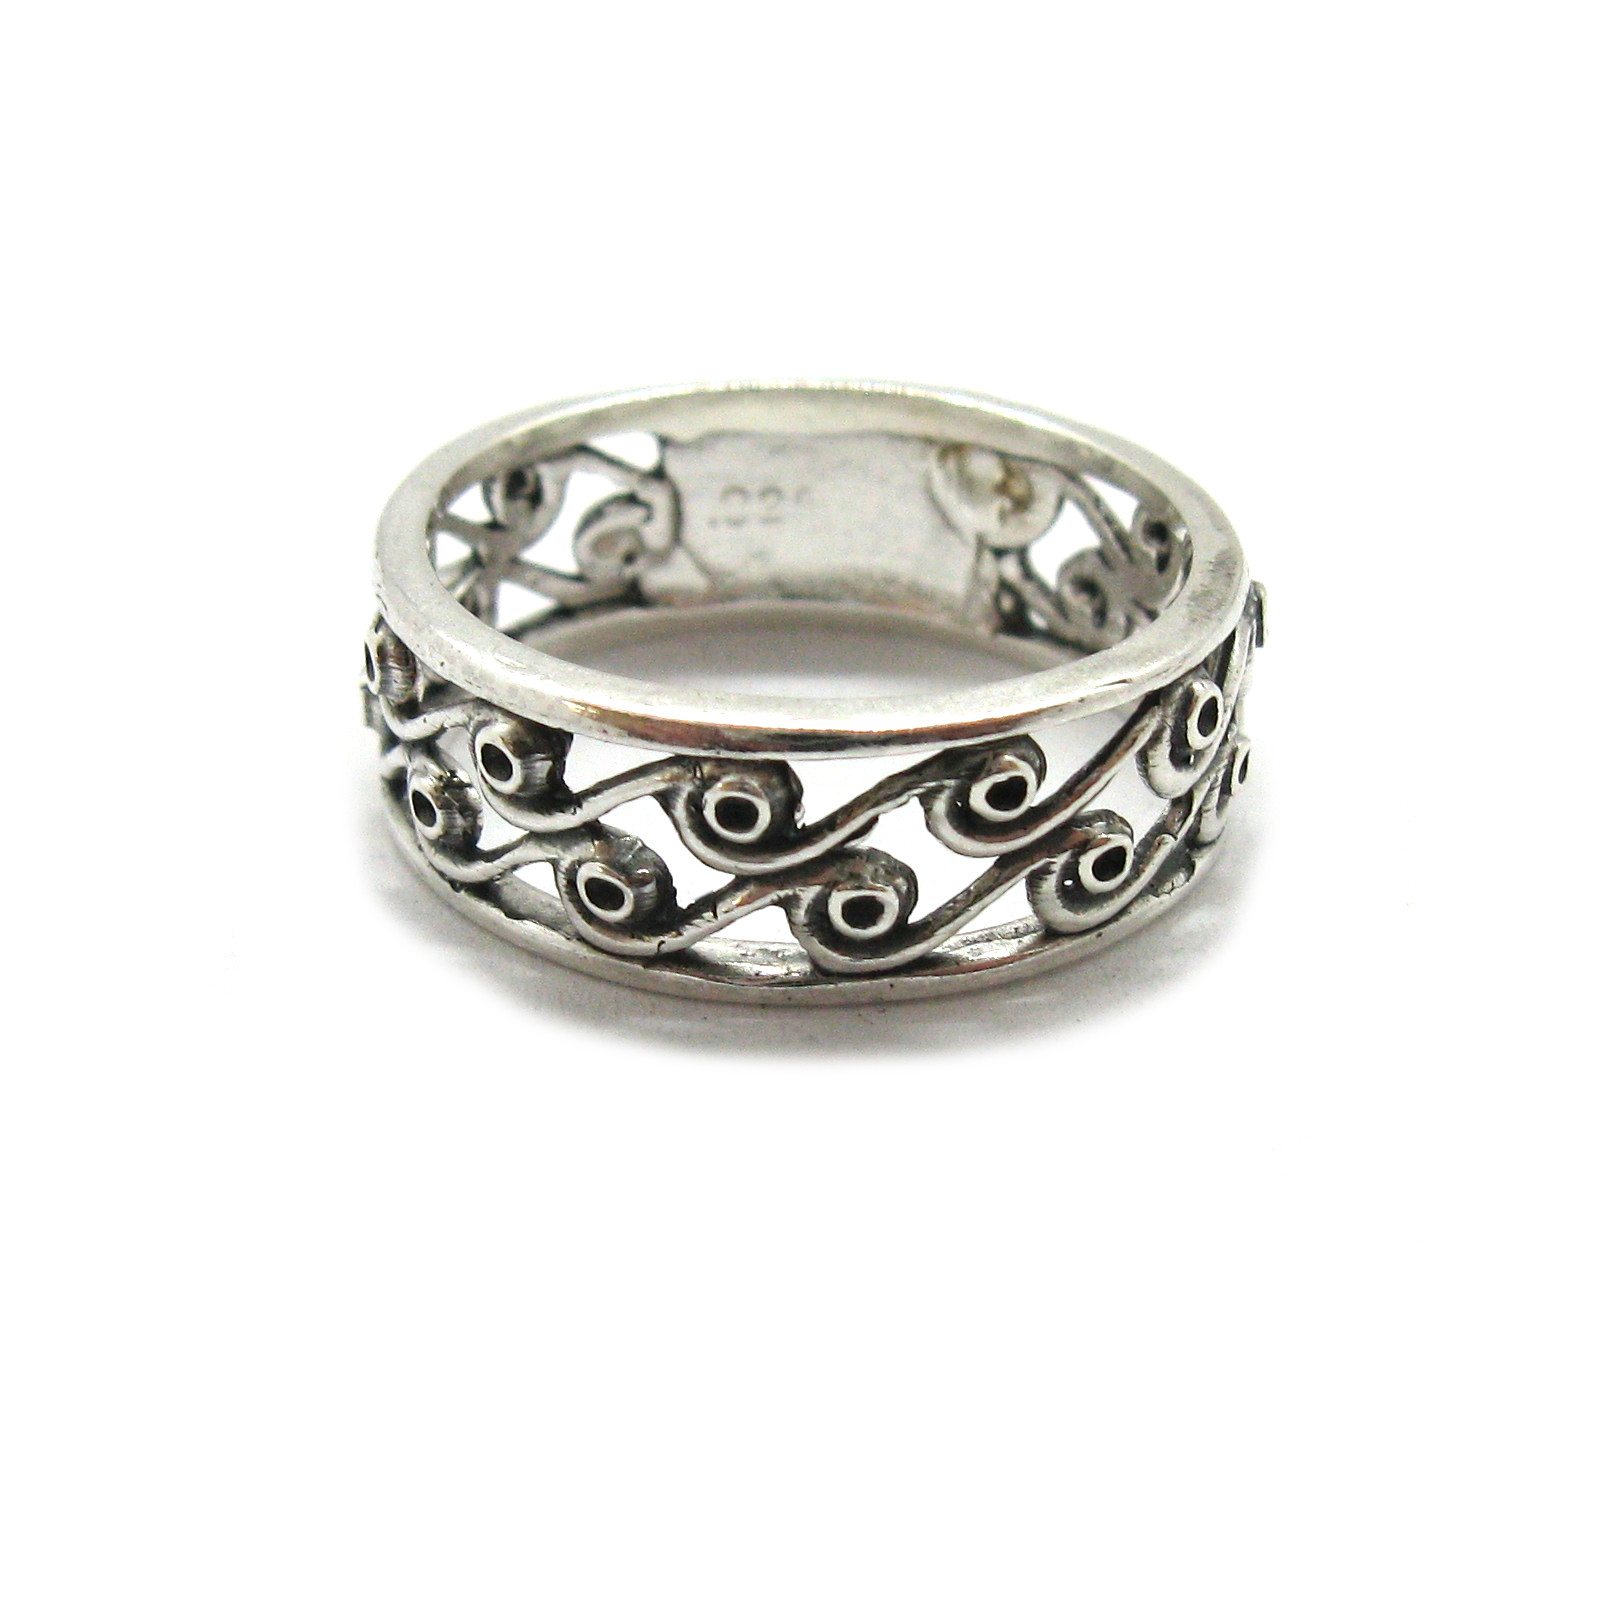 Silver ring - R001912